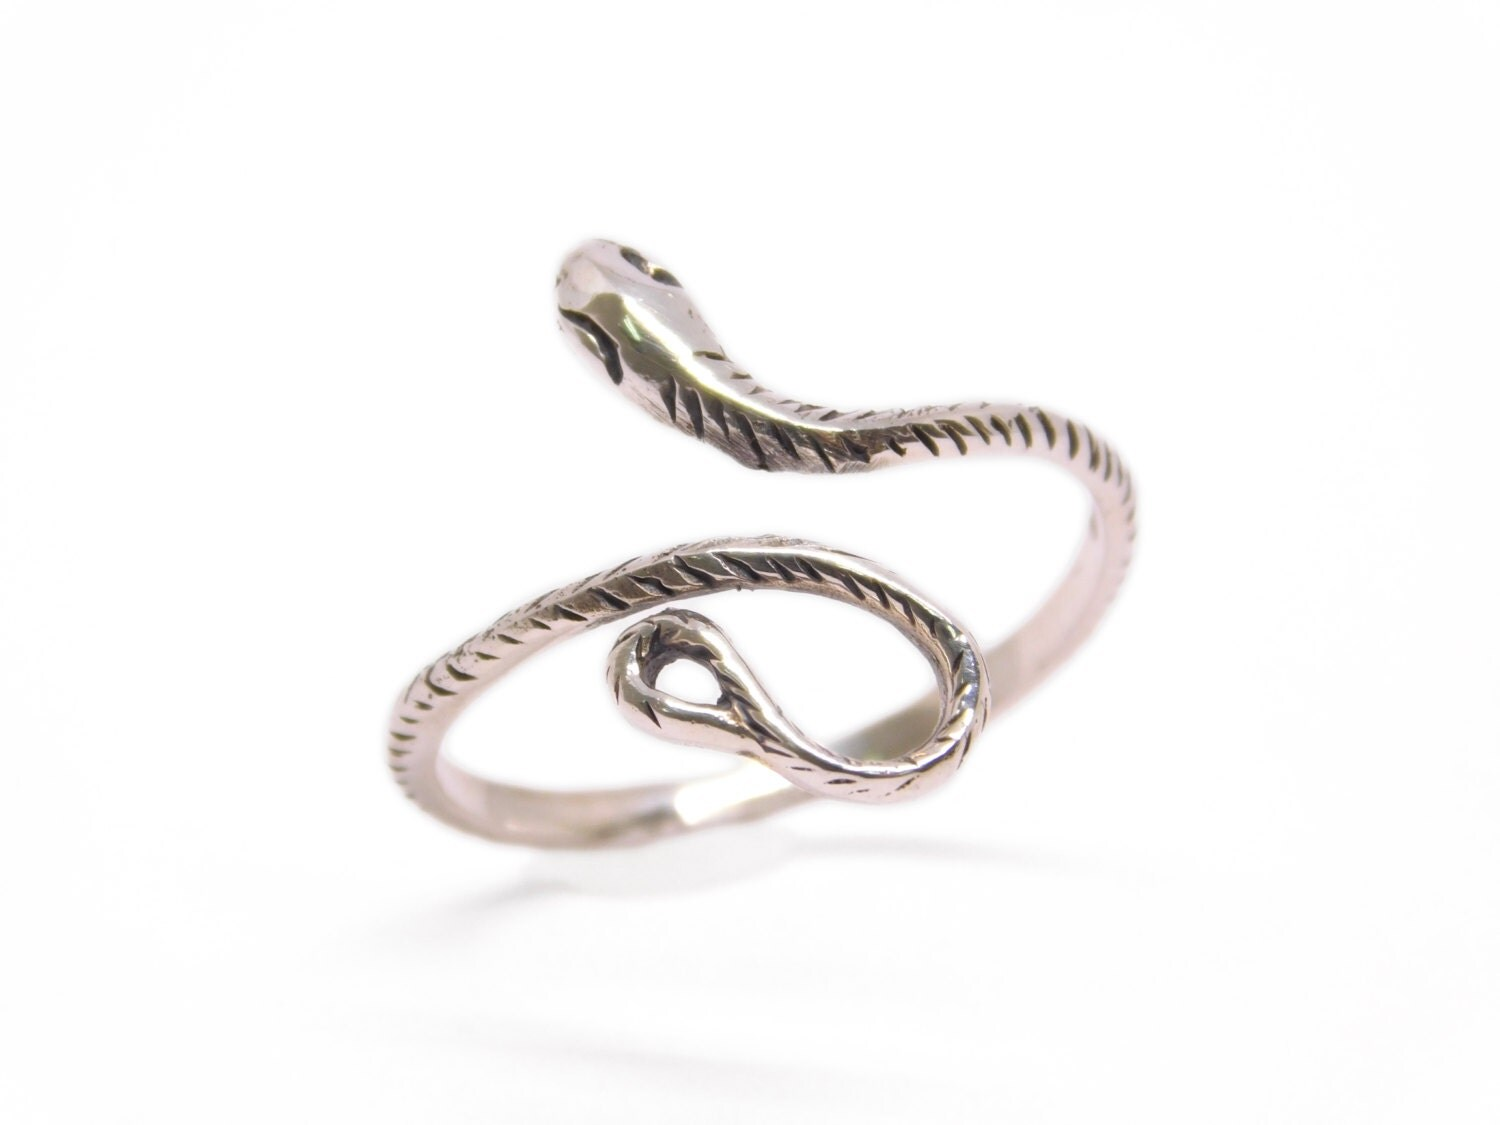 silver snake ring 925 sterling silver ring wholesale snake